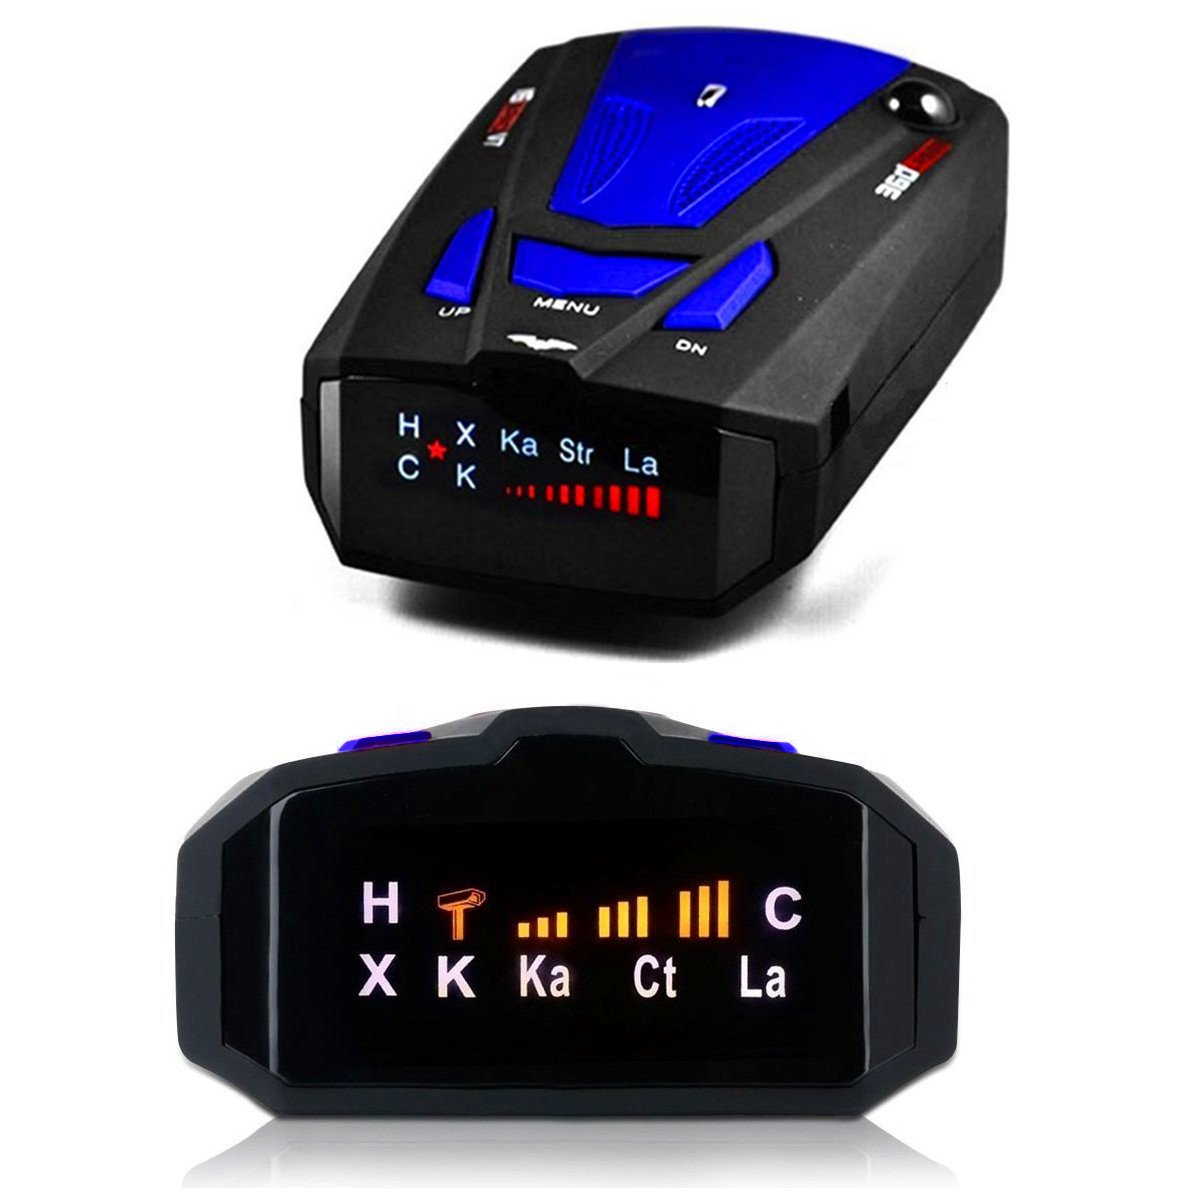 ToysUkids Radar Detector,Radar Detector with Voice Alert and Car Speed Alarm System with 360 Degree Detection by ToysUkids